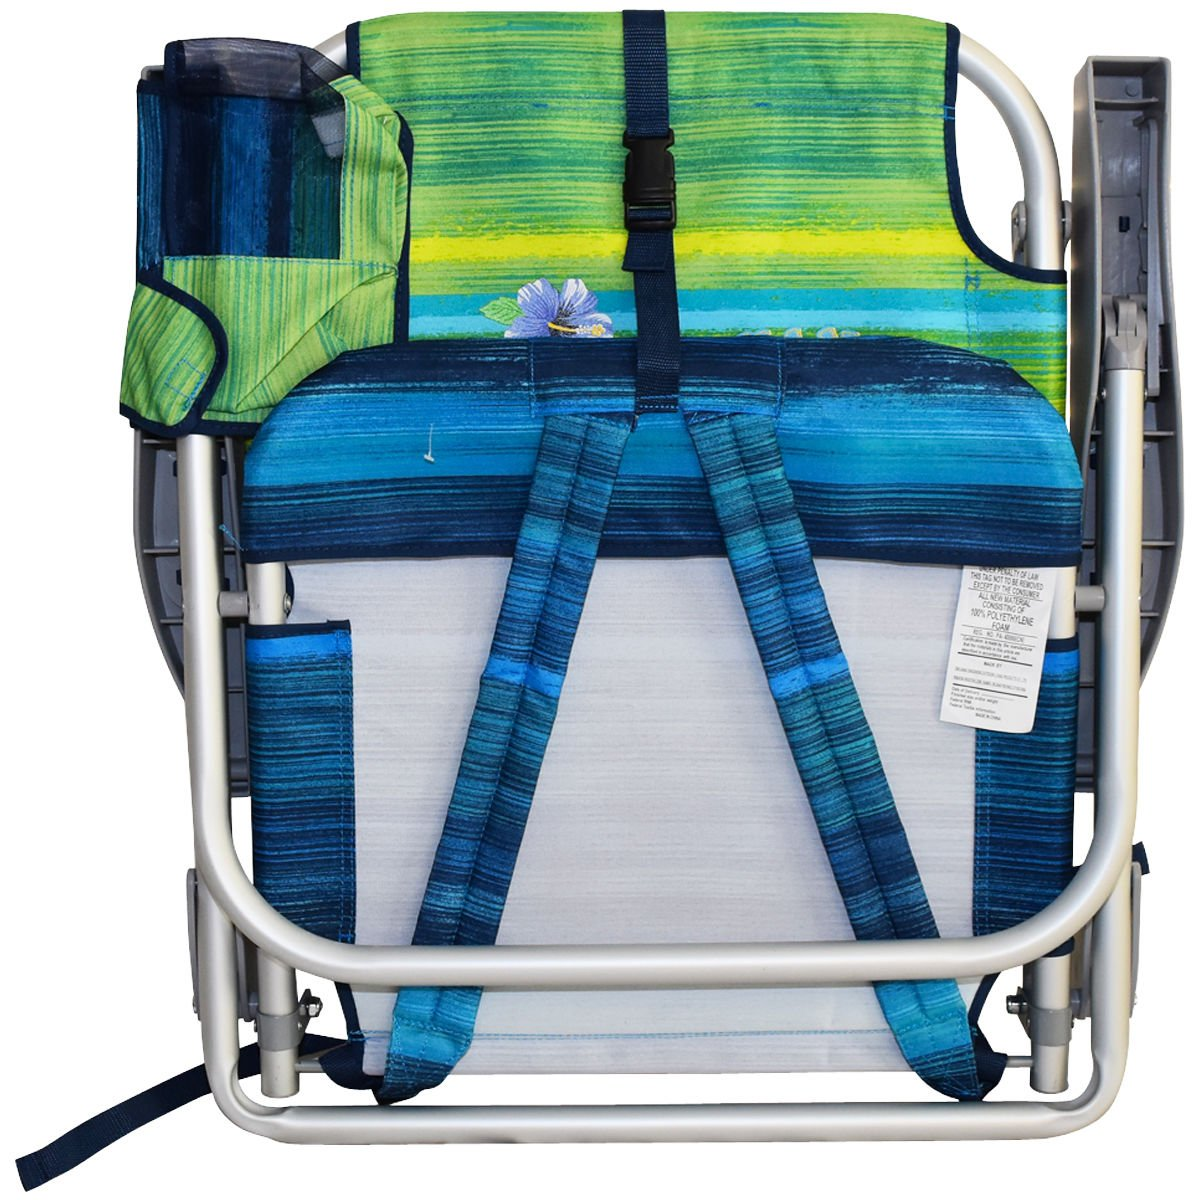 Tommy Bahama Backpack Beach Chairs with One Medium Tote Bag - Pack of 2 - Green by Tommy Bahama (Image #5)